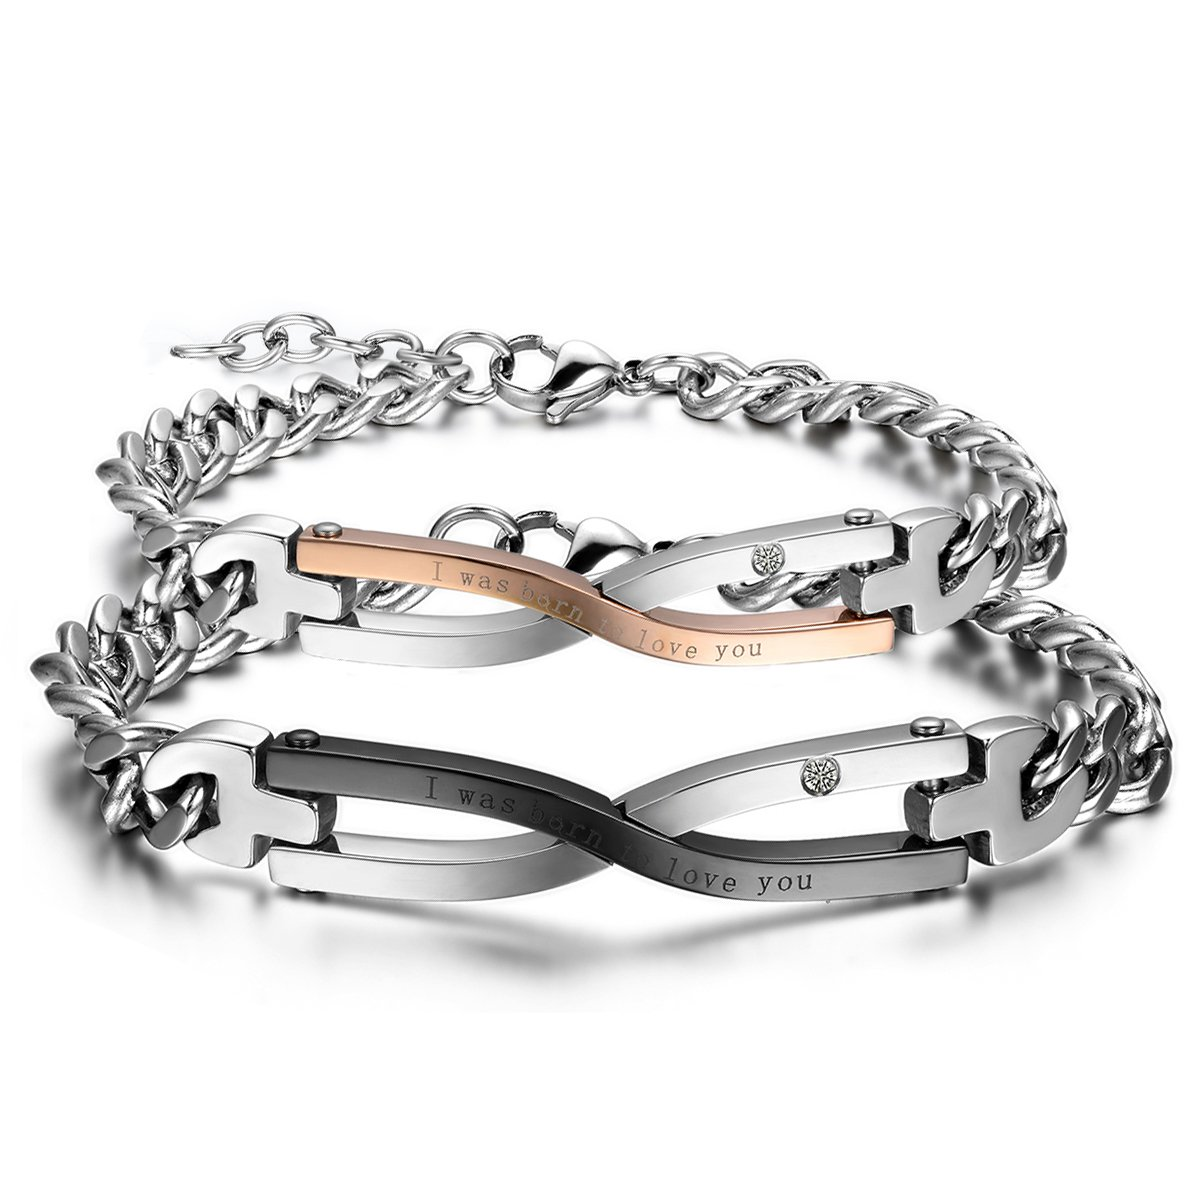 Oidea 2 PCS Couples Stainless Steel CZ Infinity Bracelet, Engraved I Was Born to Love You